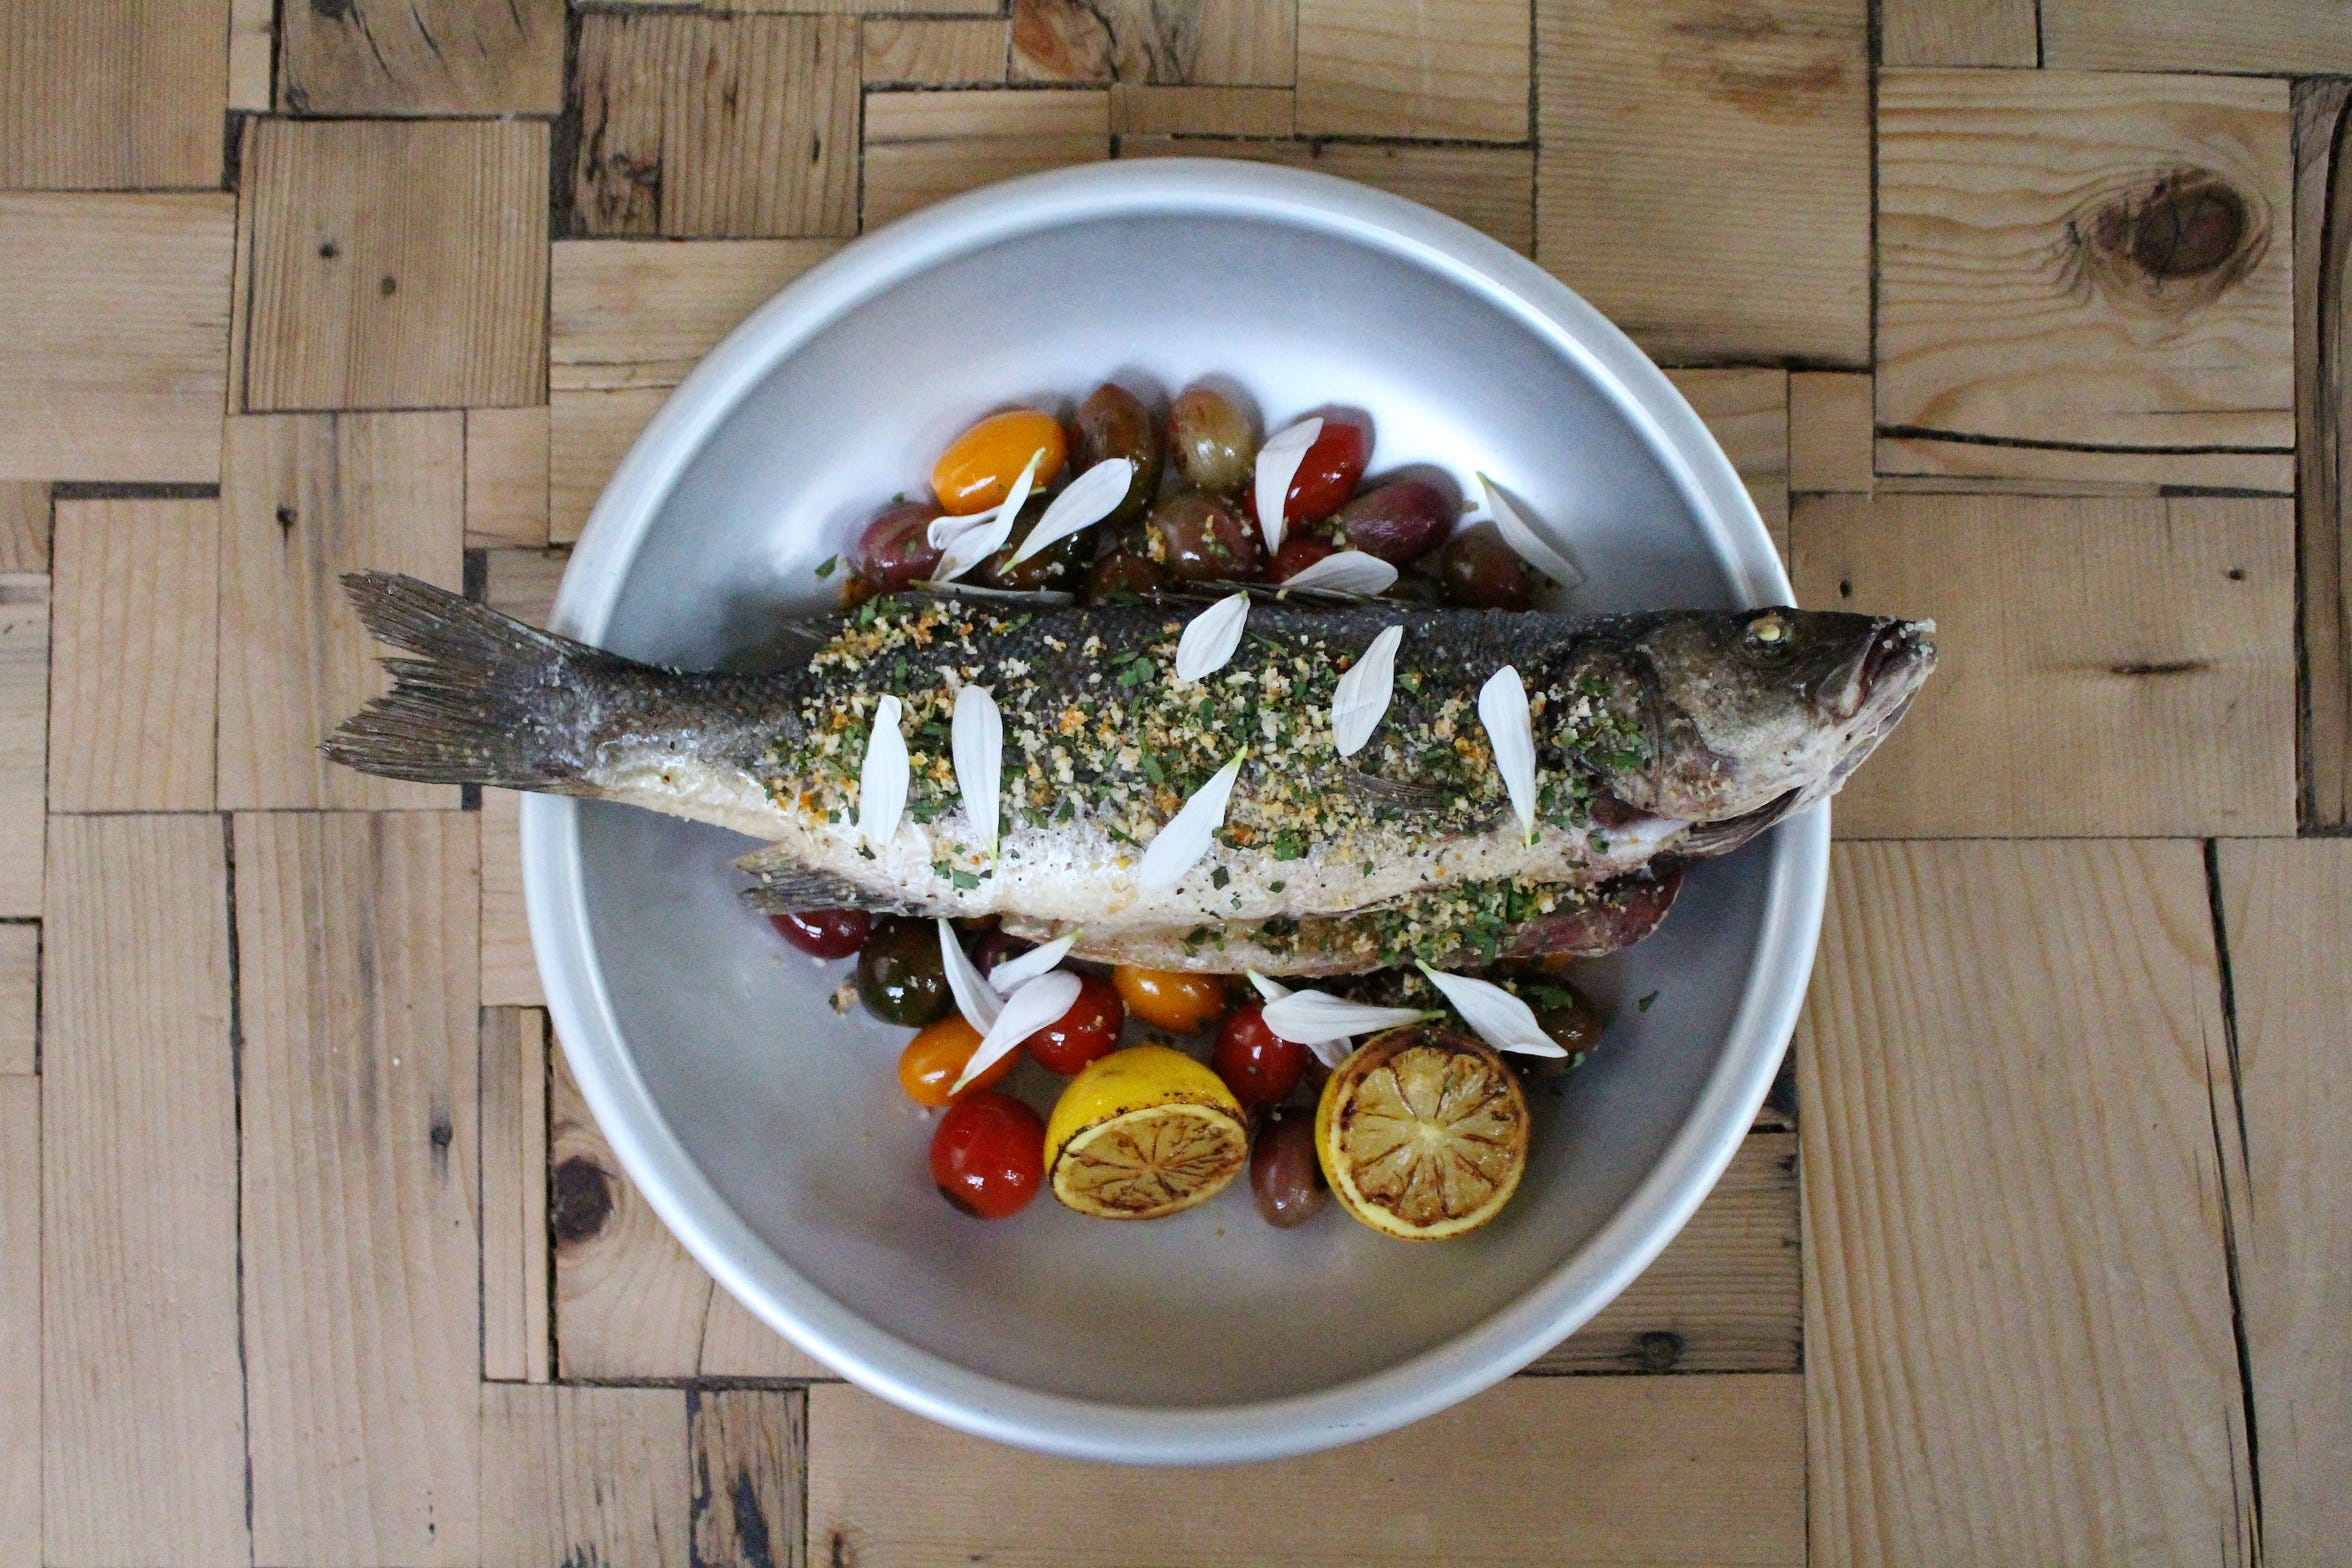 Whole branzino gets flavor from Bar Pesca's wood fired grill.